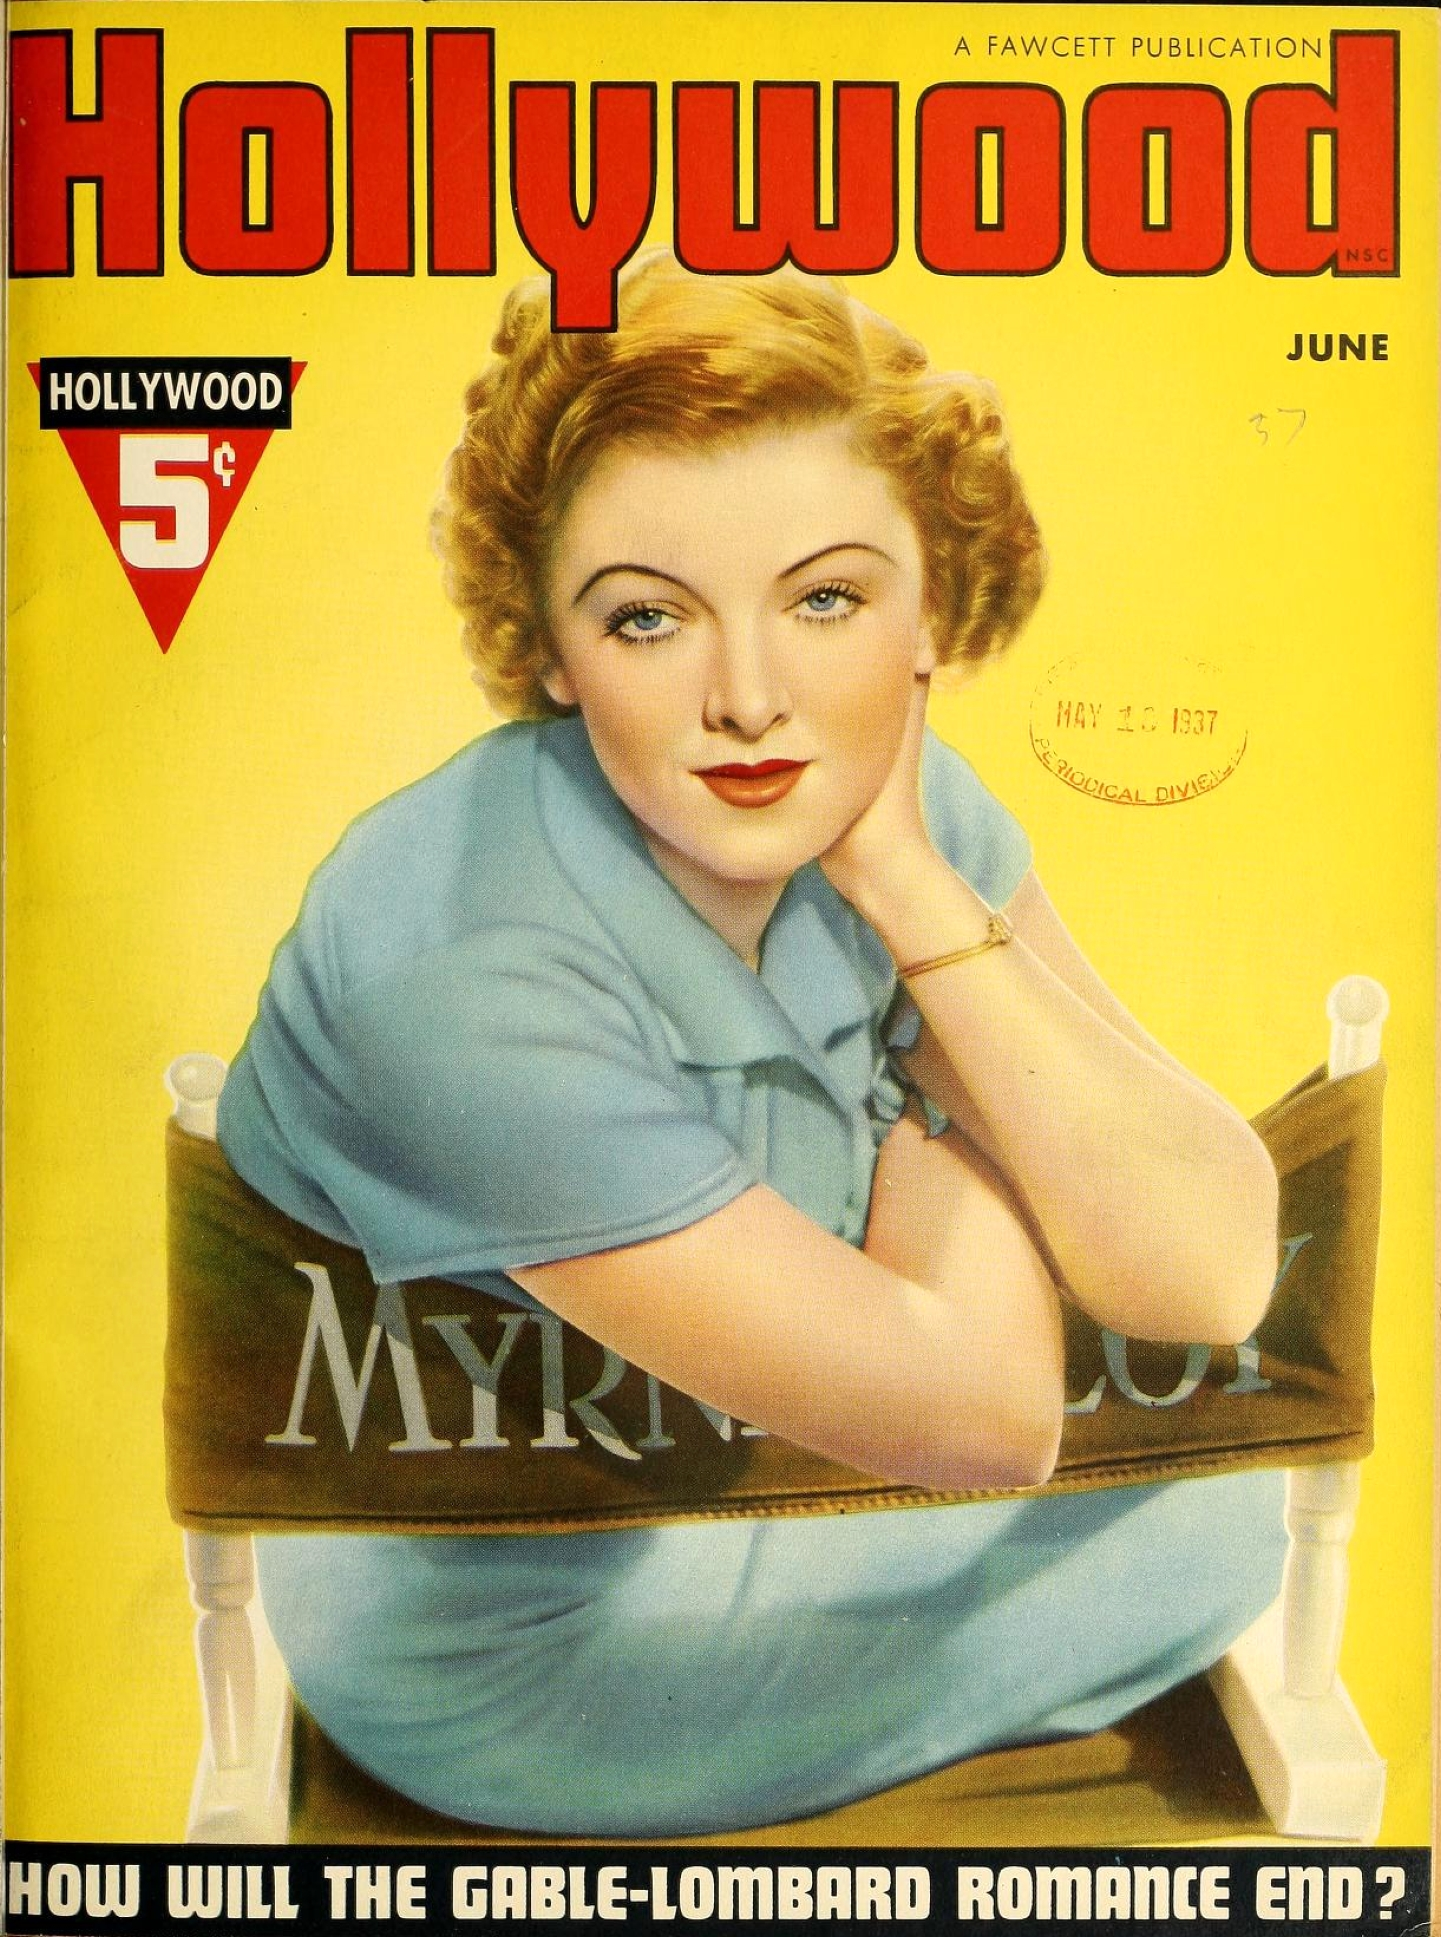 myrna loy hollywood june 1937a